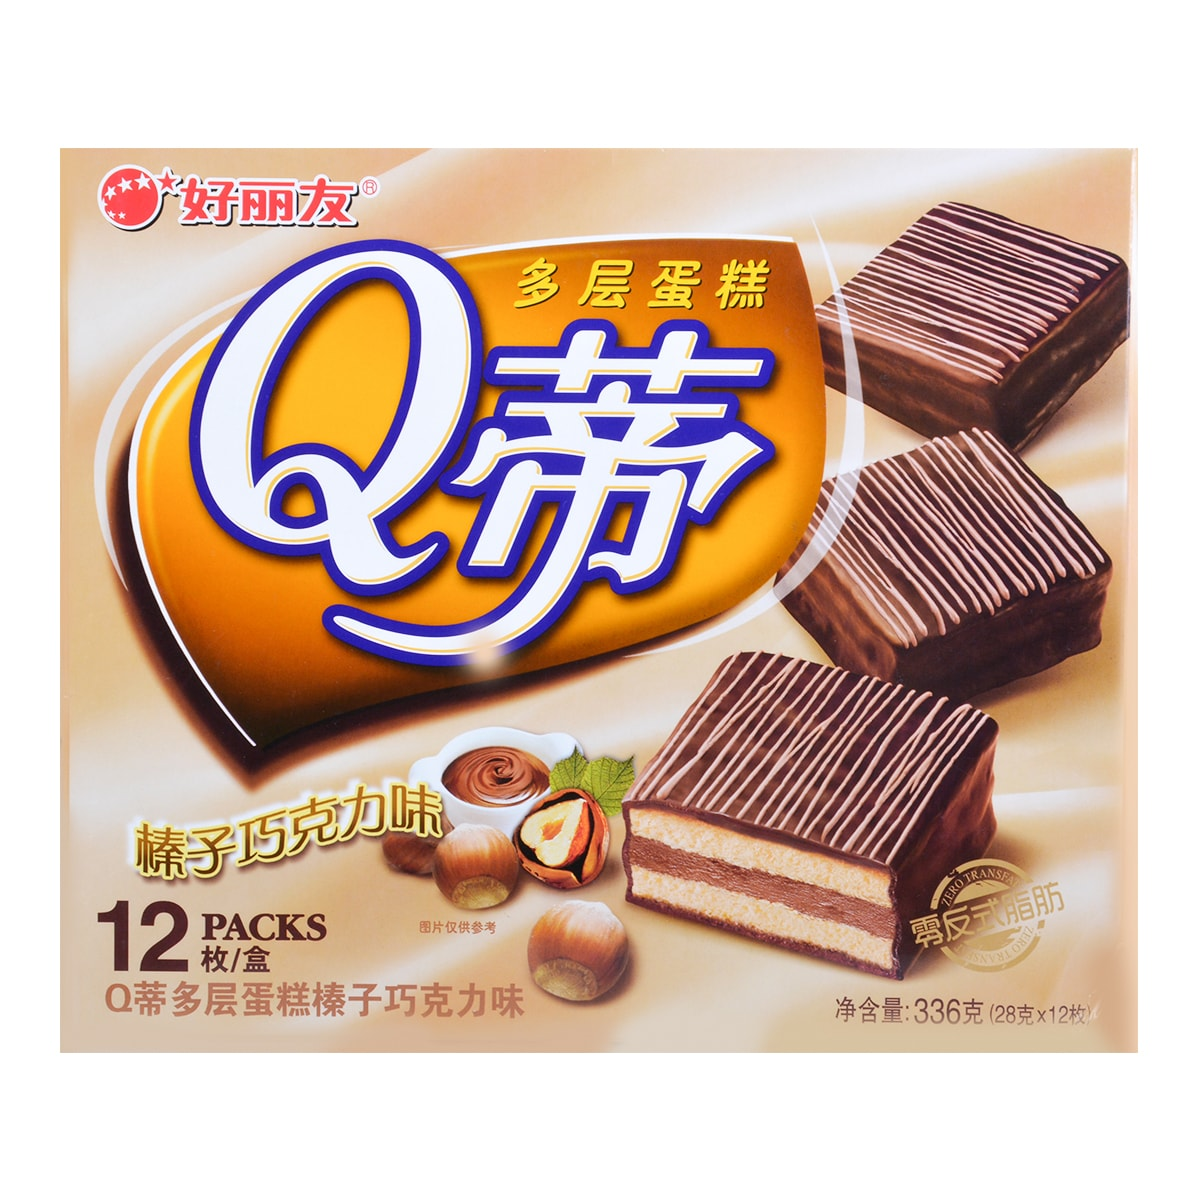 ORION Hazelnut Chocolate Cake 12pc 336g